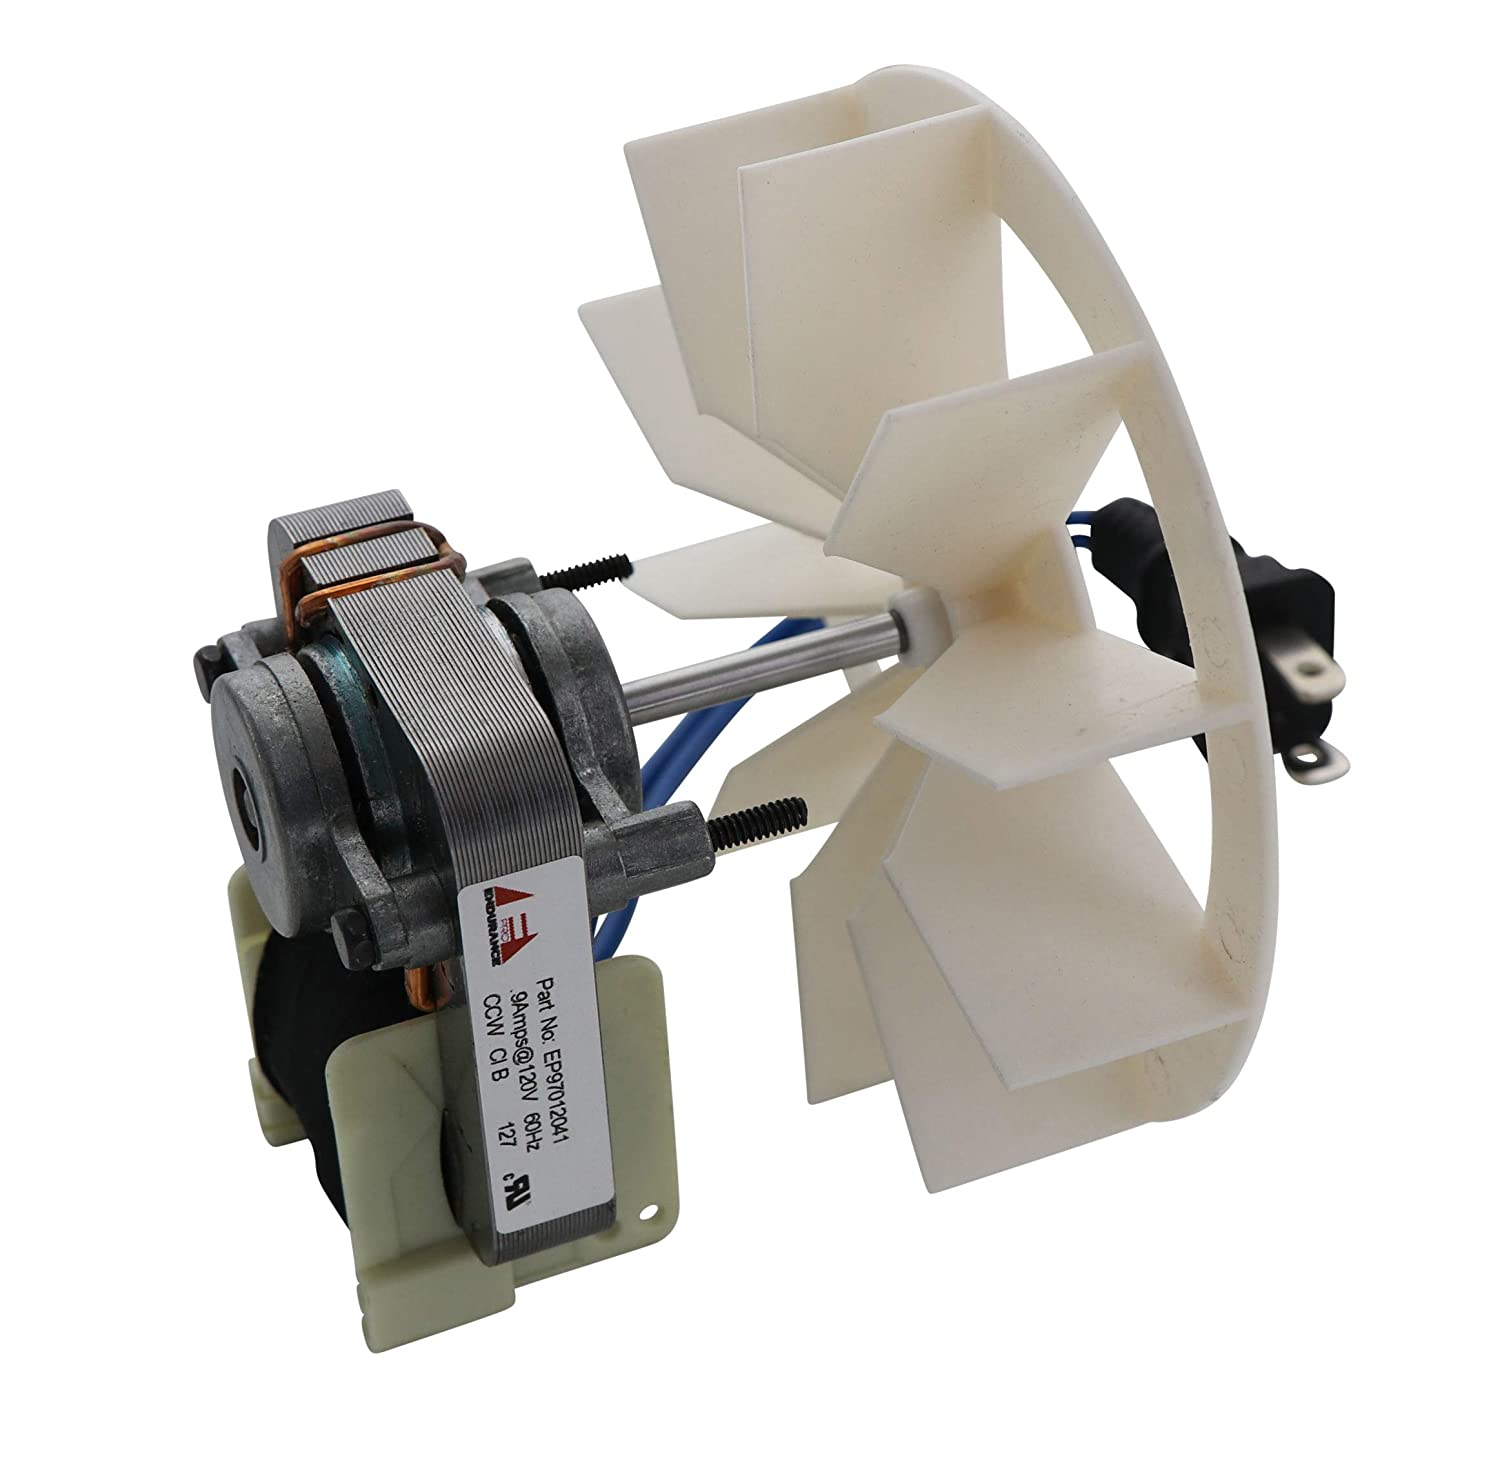 Endurance Pro 97012041 Vent Fan Motor & Blower Wheel Replacement for Broan NuTone